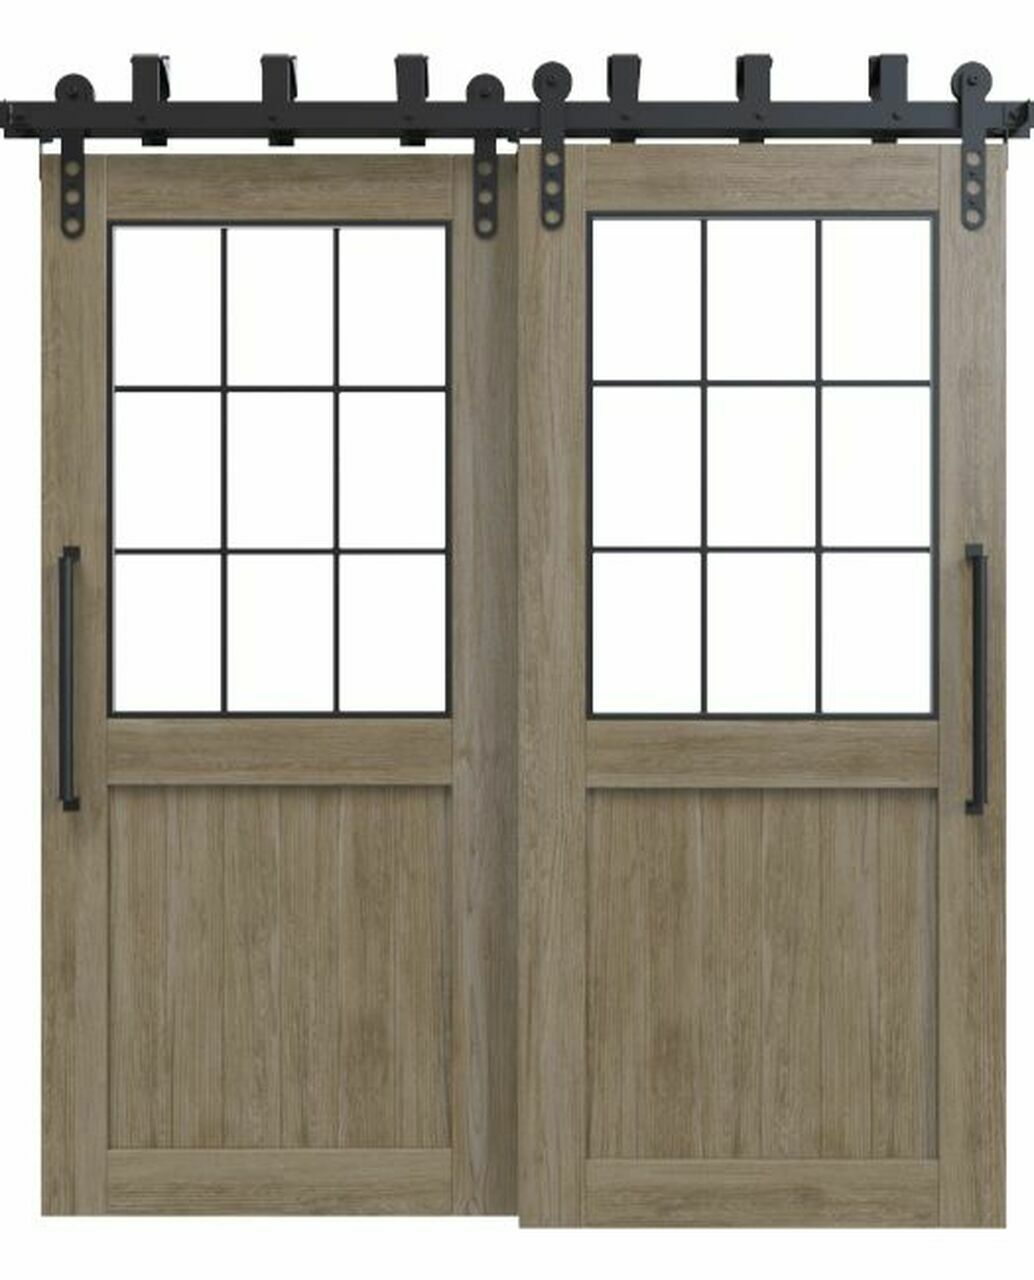 wood bypass barn door with glass window